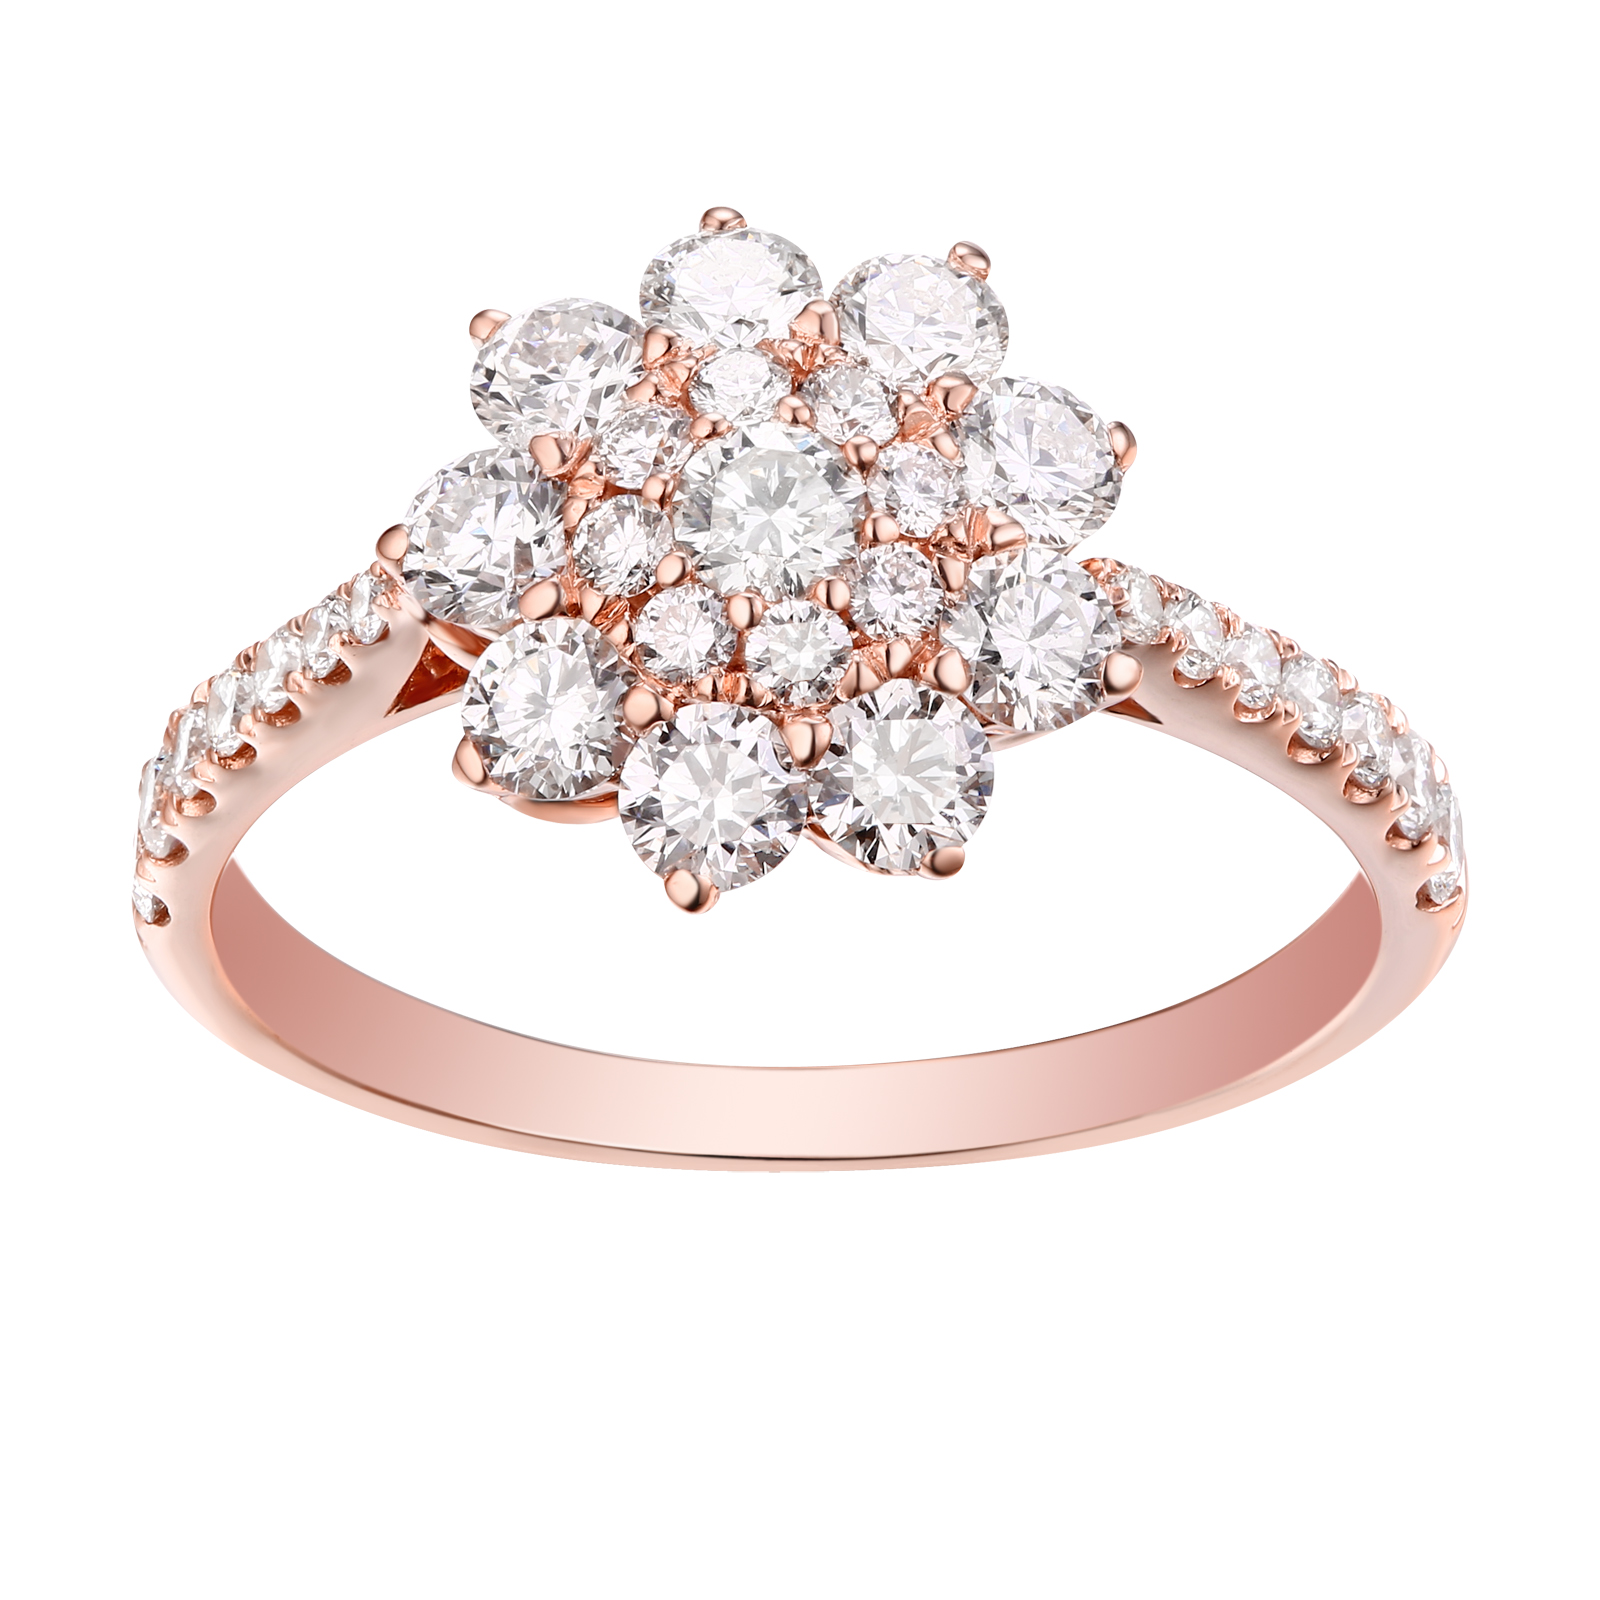 R-22035WHT- 14K Rose Gold Diamond Ring, 1.27 TCW